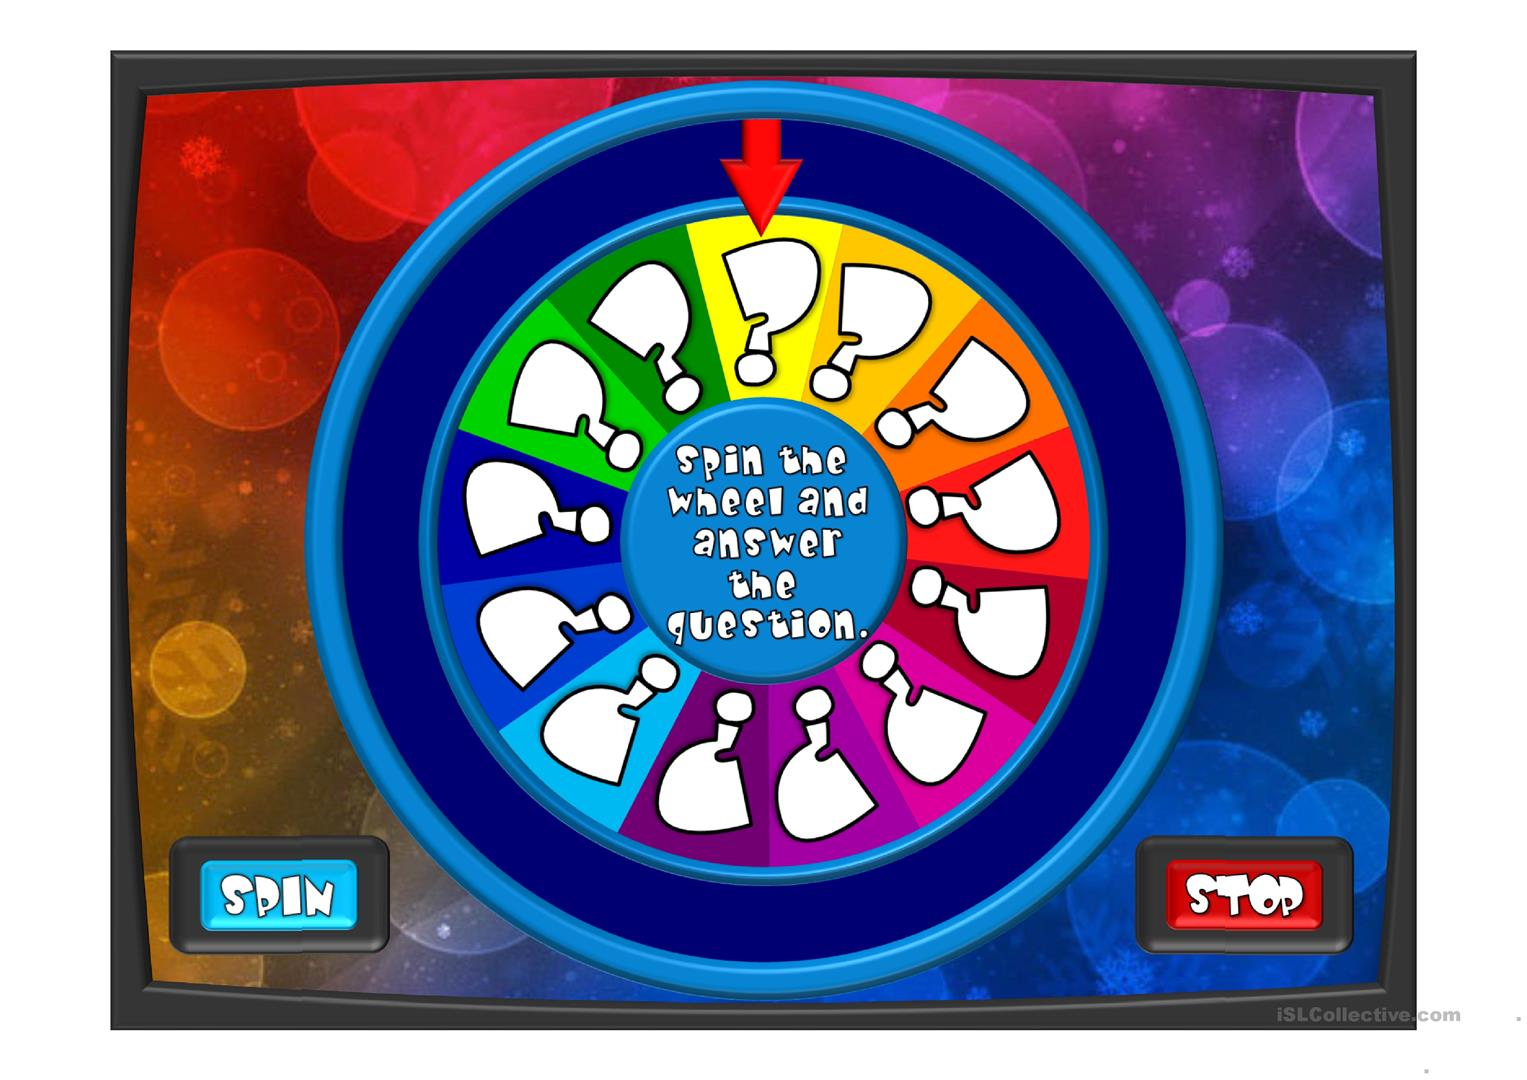 10 free esl spin the wheel powerpoint presentations, exercises, Powerpoint templates